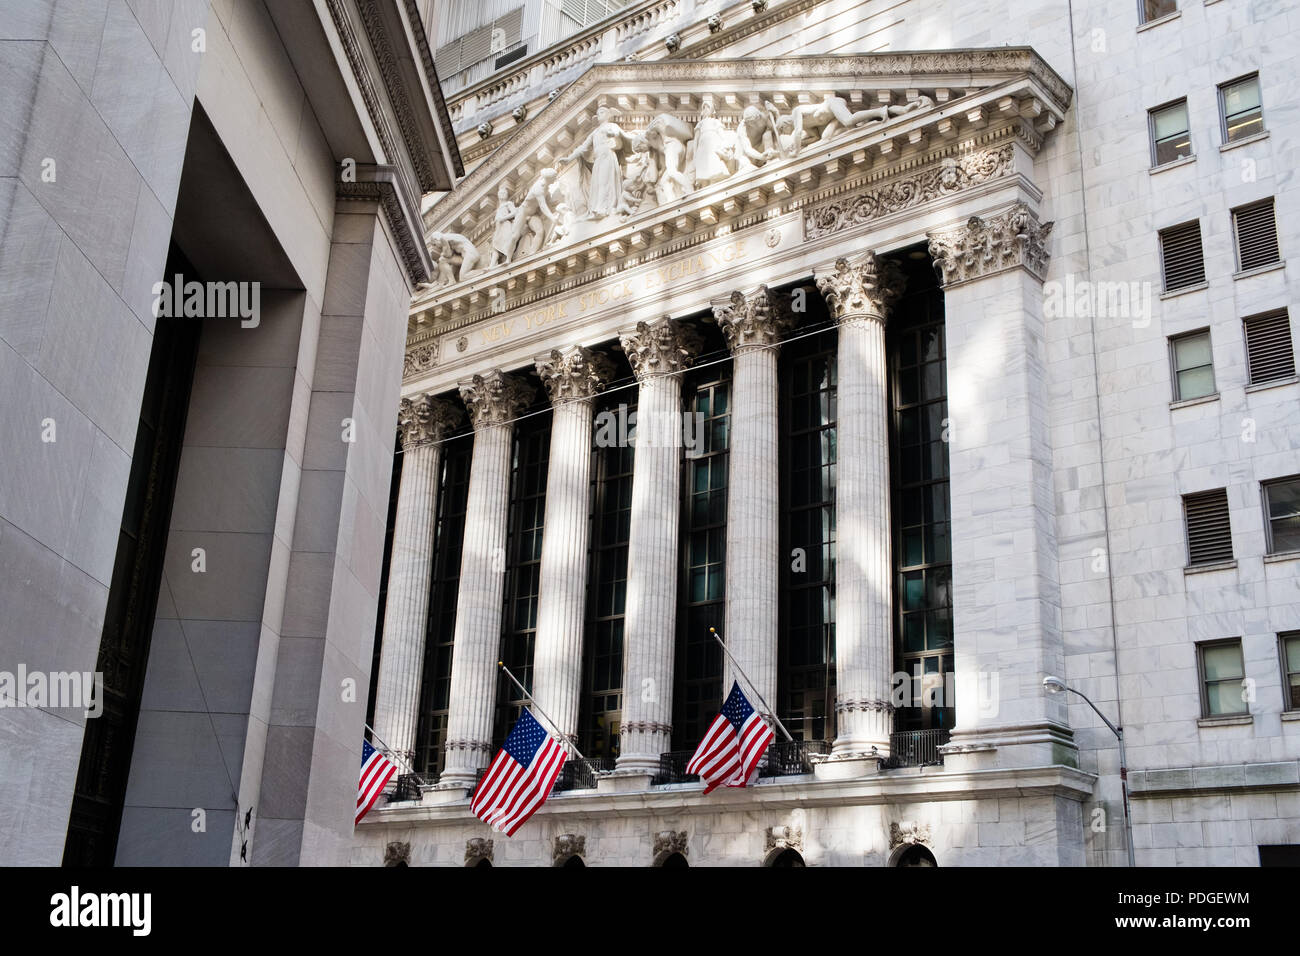 Portico of New York Stock Exchange looking up - Stock Image